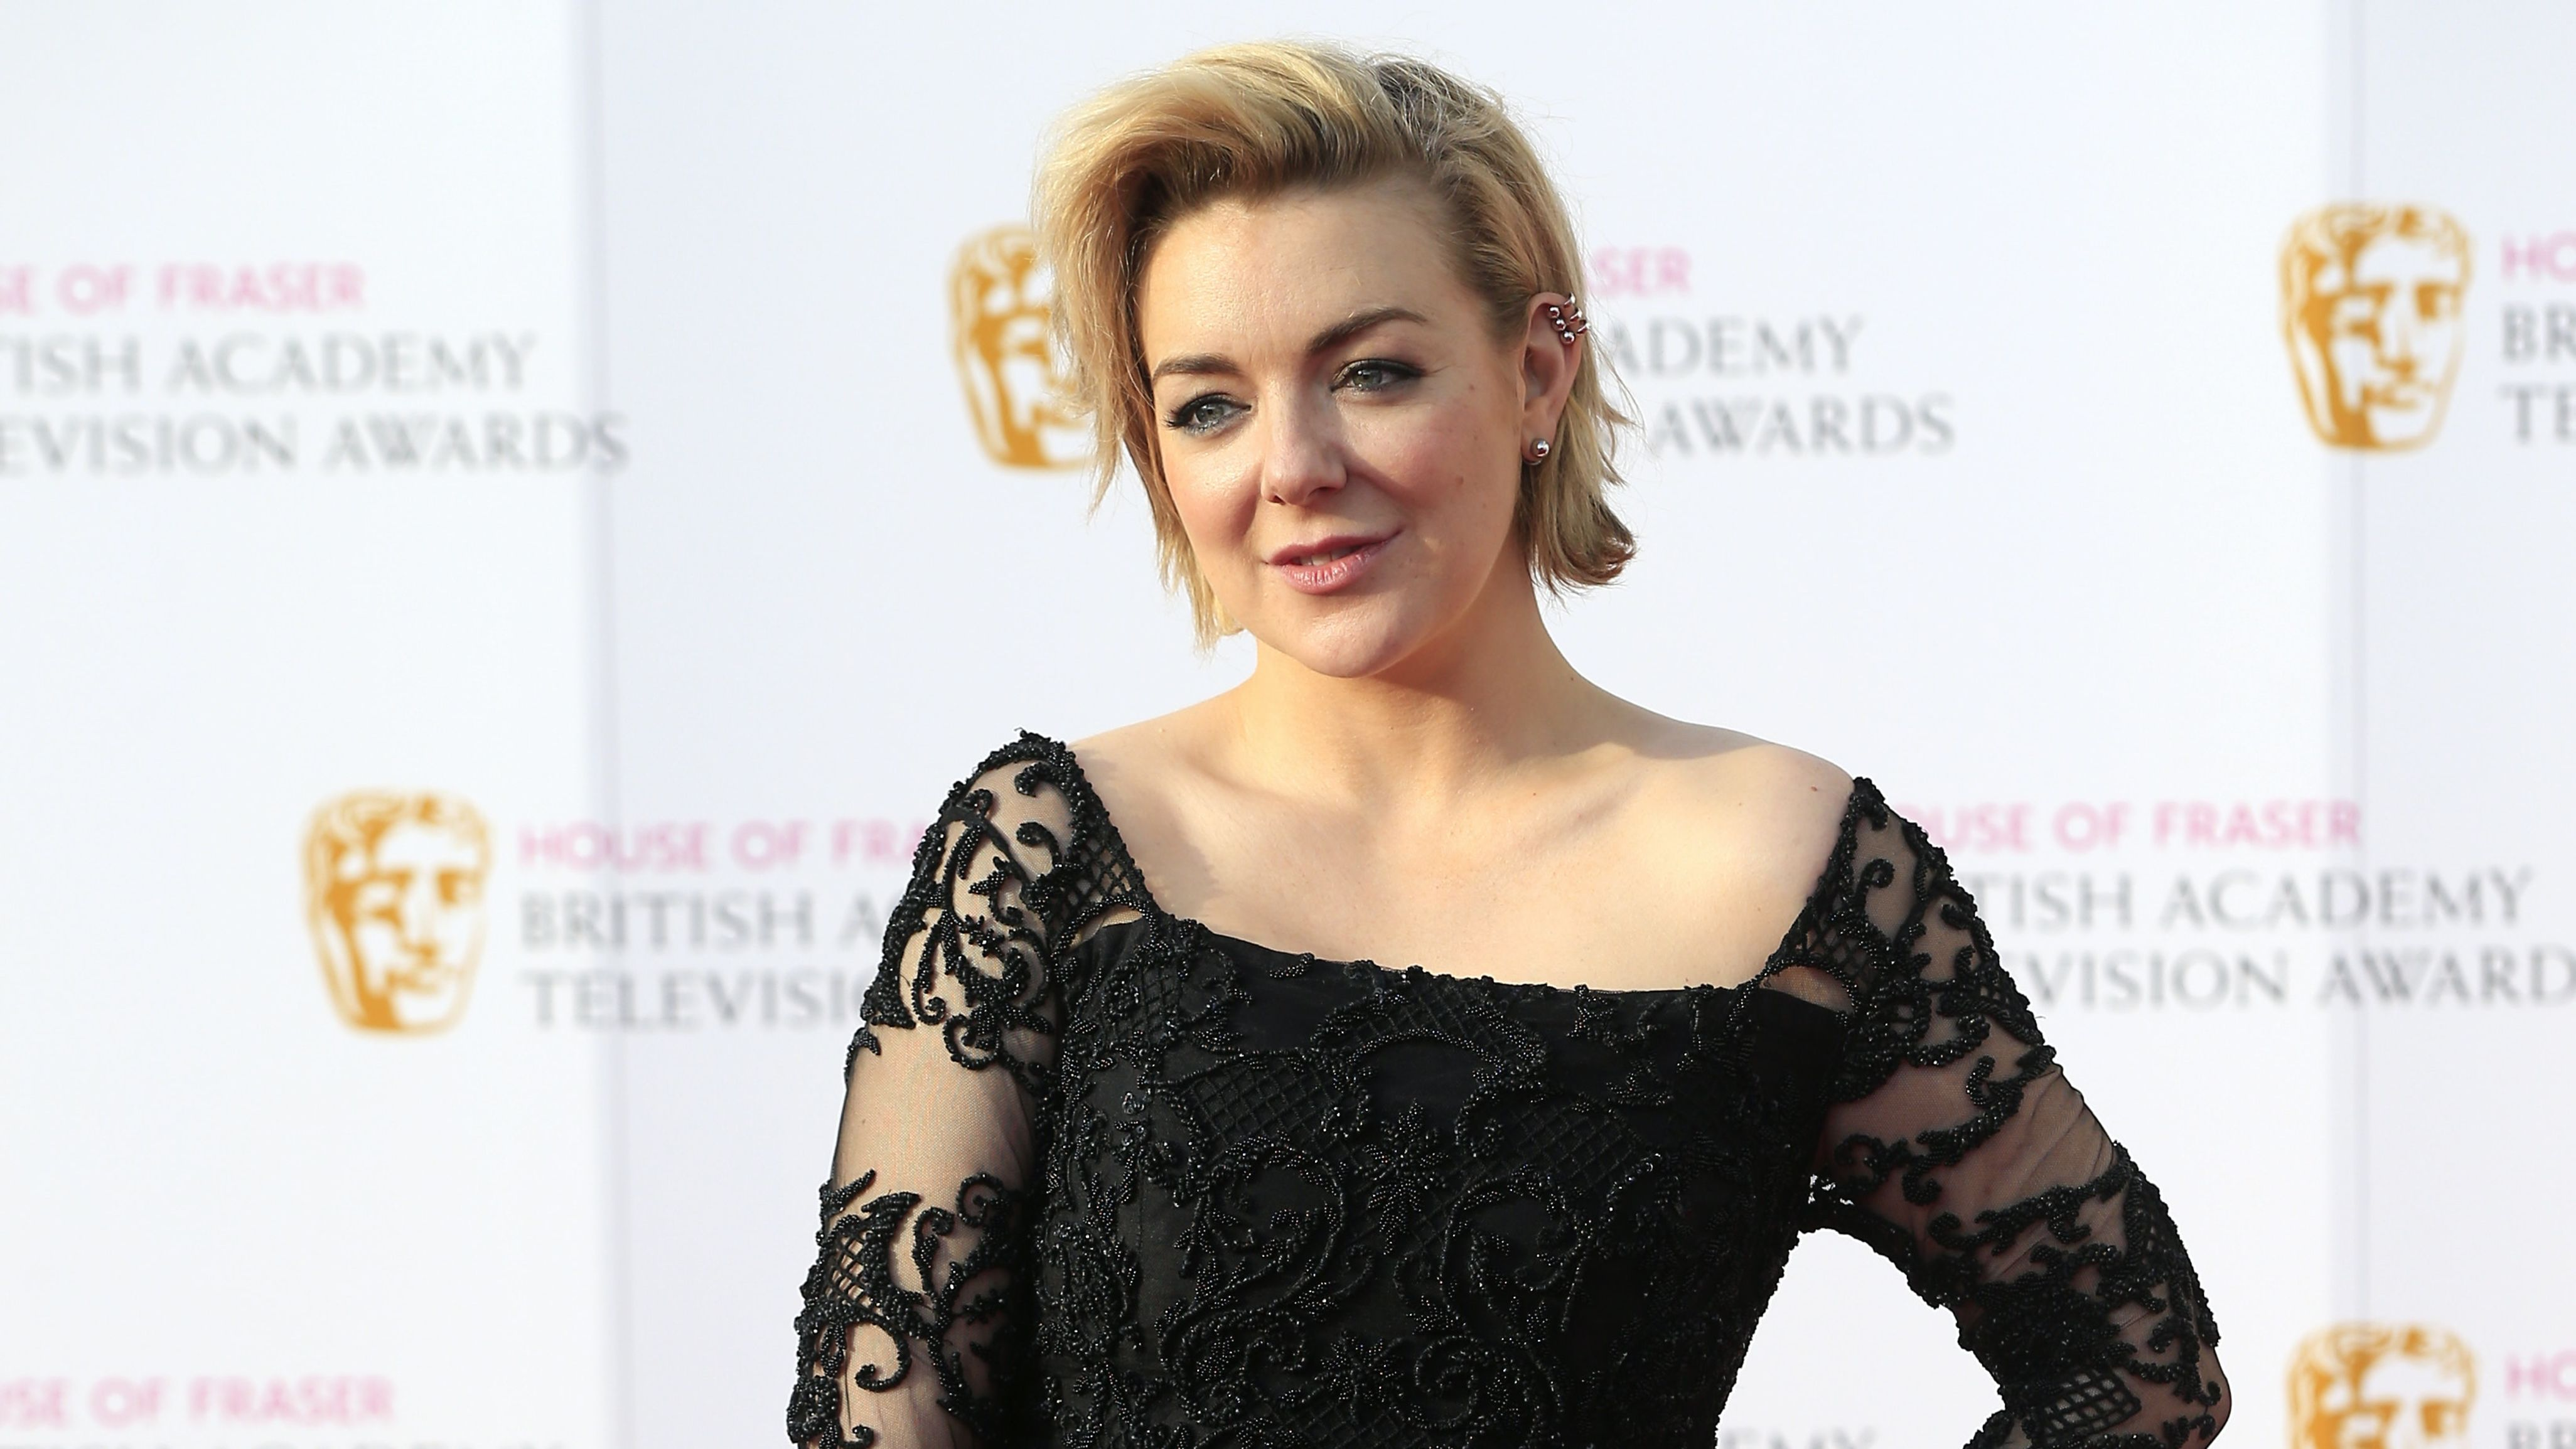 Sheridan Smith To Narrate Channel 4 Documentary About Homeless Children In Us The Irish News